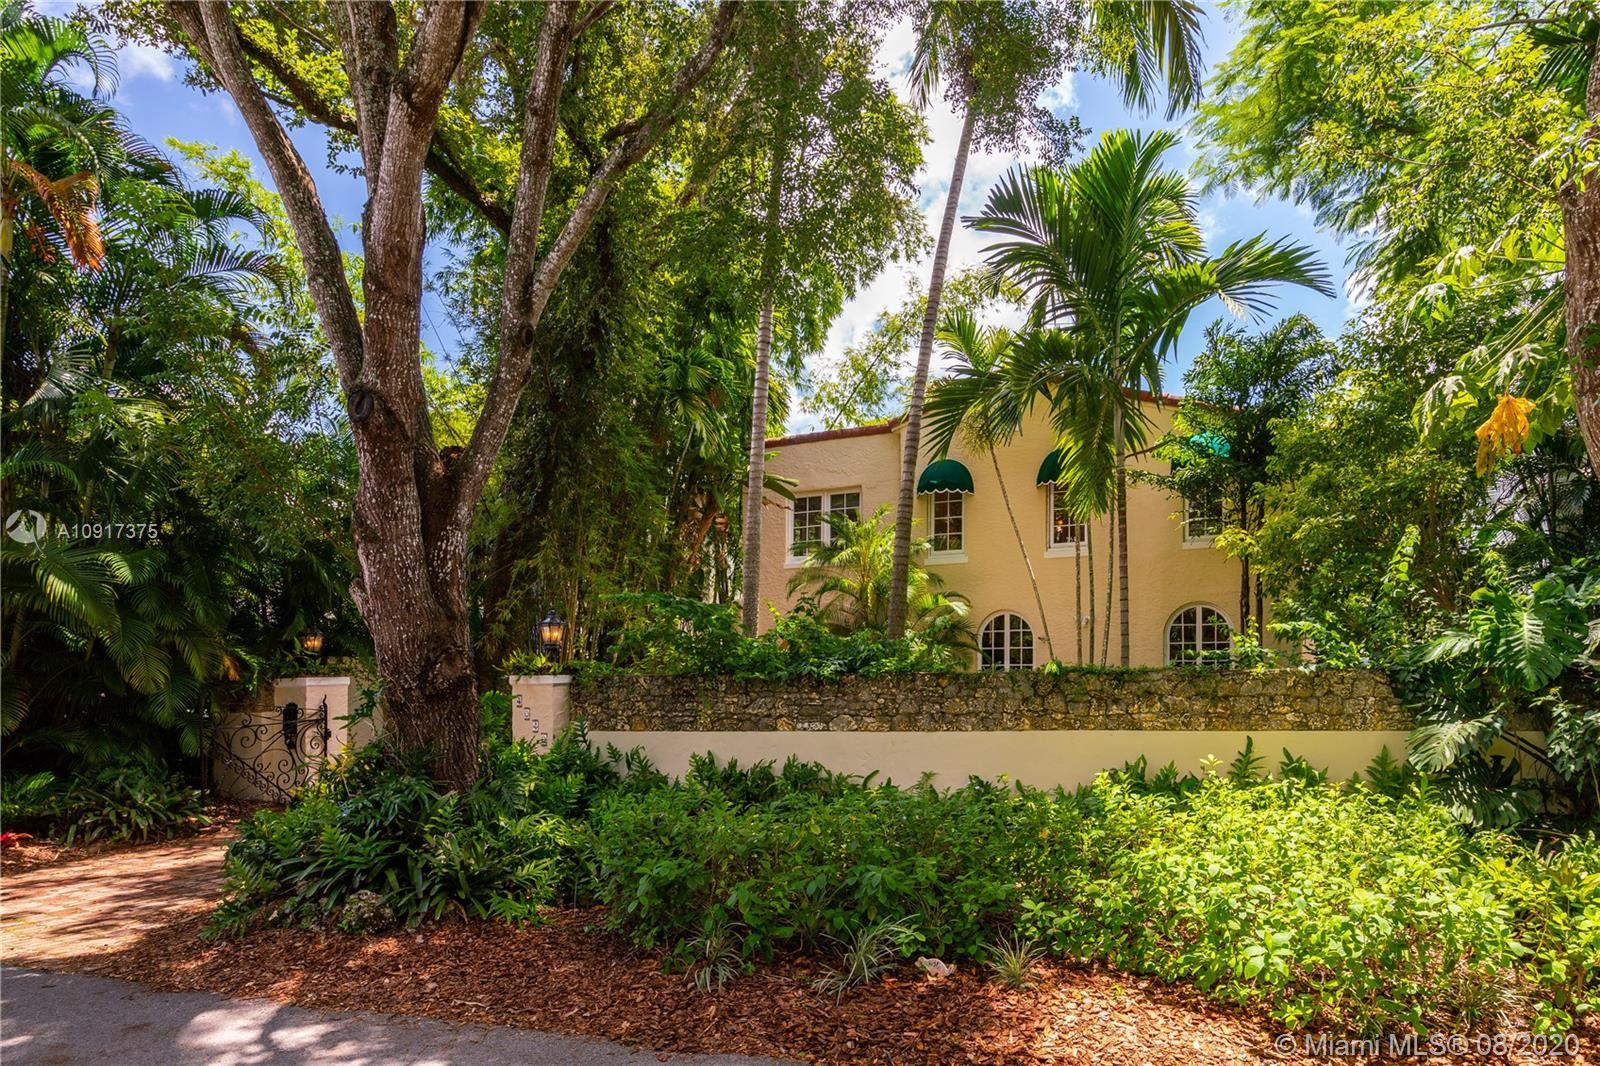 Classic beauty reverberates from every corner of this 1926 Mediterranean home in the coveted section of  South Coconut Grove. Enter through the gates to the Chicago brick driveway and luxuriate in the lush landscaping, lovingly planted by a master gardener. The charming and authentic living room welcomes with arched windows, fireplace, and original hardwood floors. The versatile 4-bedroom layout also includes a den and a bonus room which works perfectly as a playroom or at-home-learning space. The generous second floor main bedroom includes a fireplace and deck overlooking the pool which is a veritable Garden of Eden, adorned with a mosaic-tile fountain. Updates include new plumbing. This stunning property is part of the Utopia HOA. A Very Special Home.